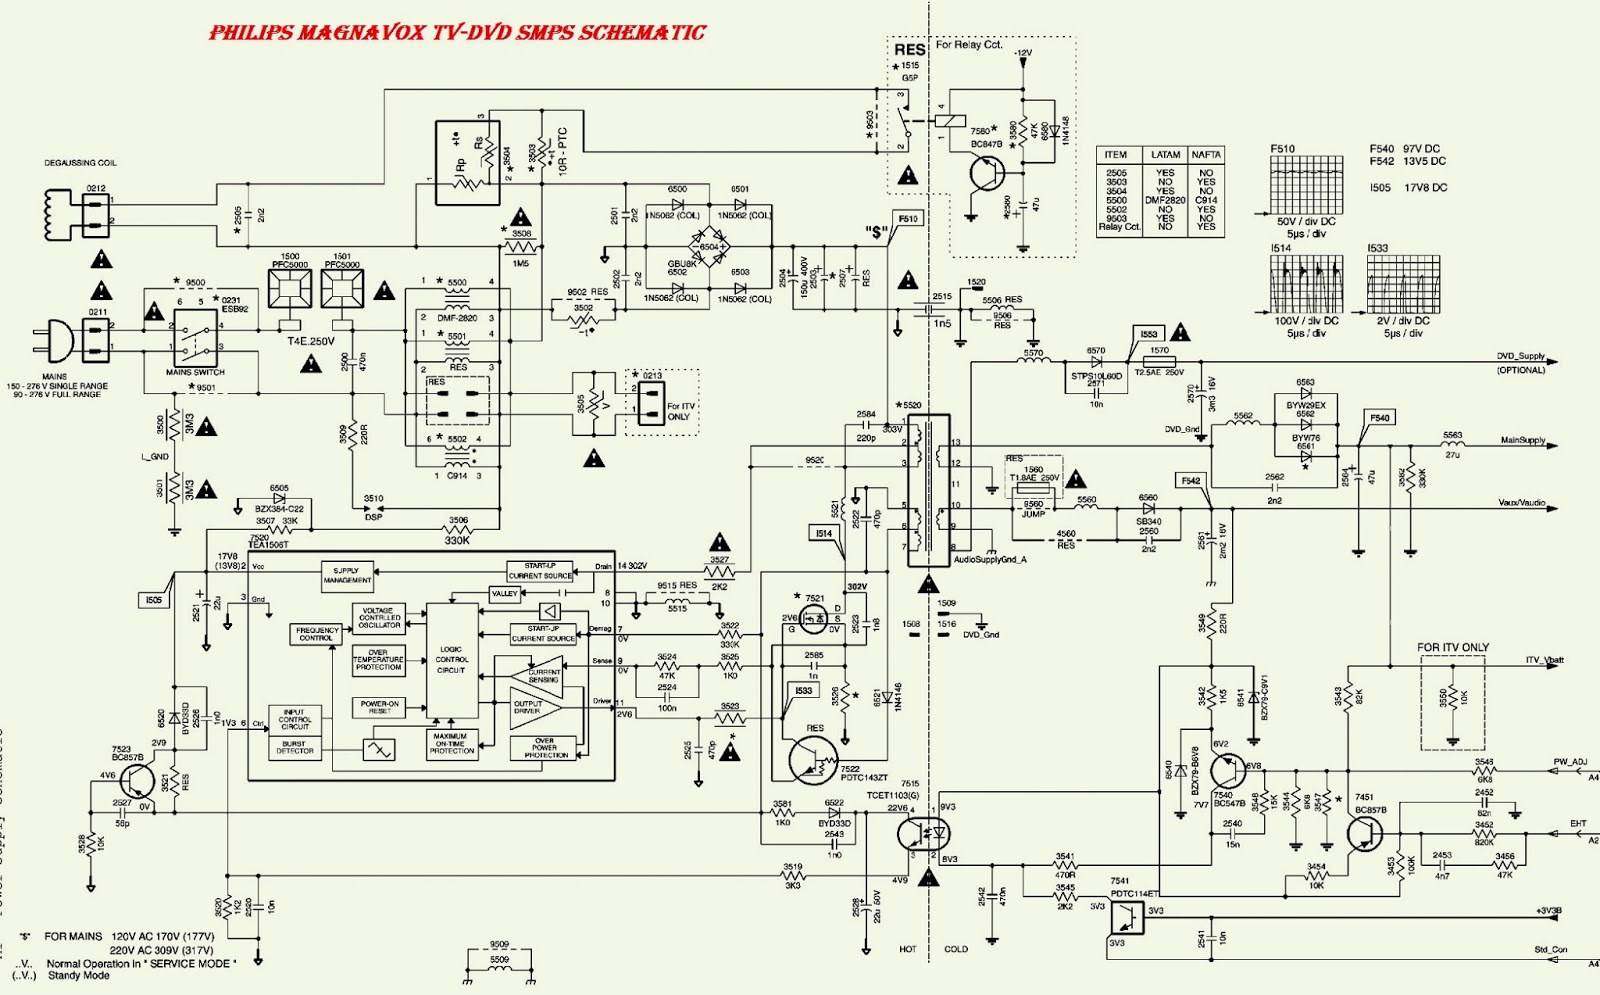 En furthermore Leakage And Continuity Tester furthermore Raspberrypi Fet Led Lighting Controller as well Power Supply G Board Schematic Circuit moreover Silicon Chip Theremin Modifications. on schematic circuit diagram